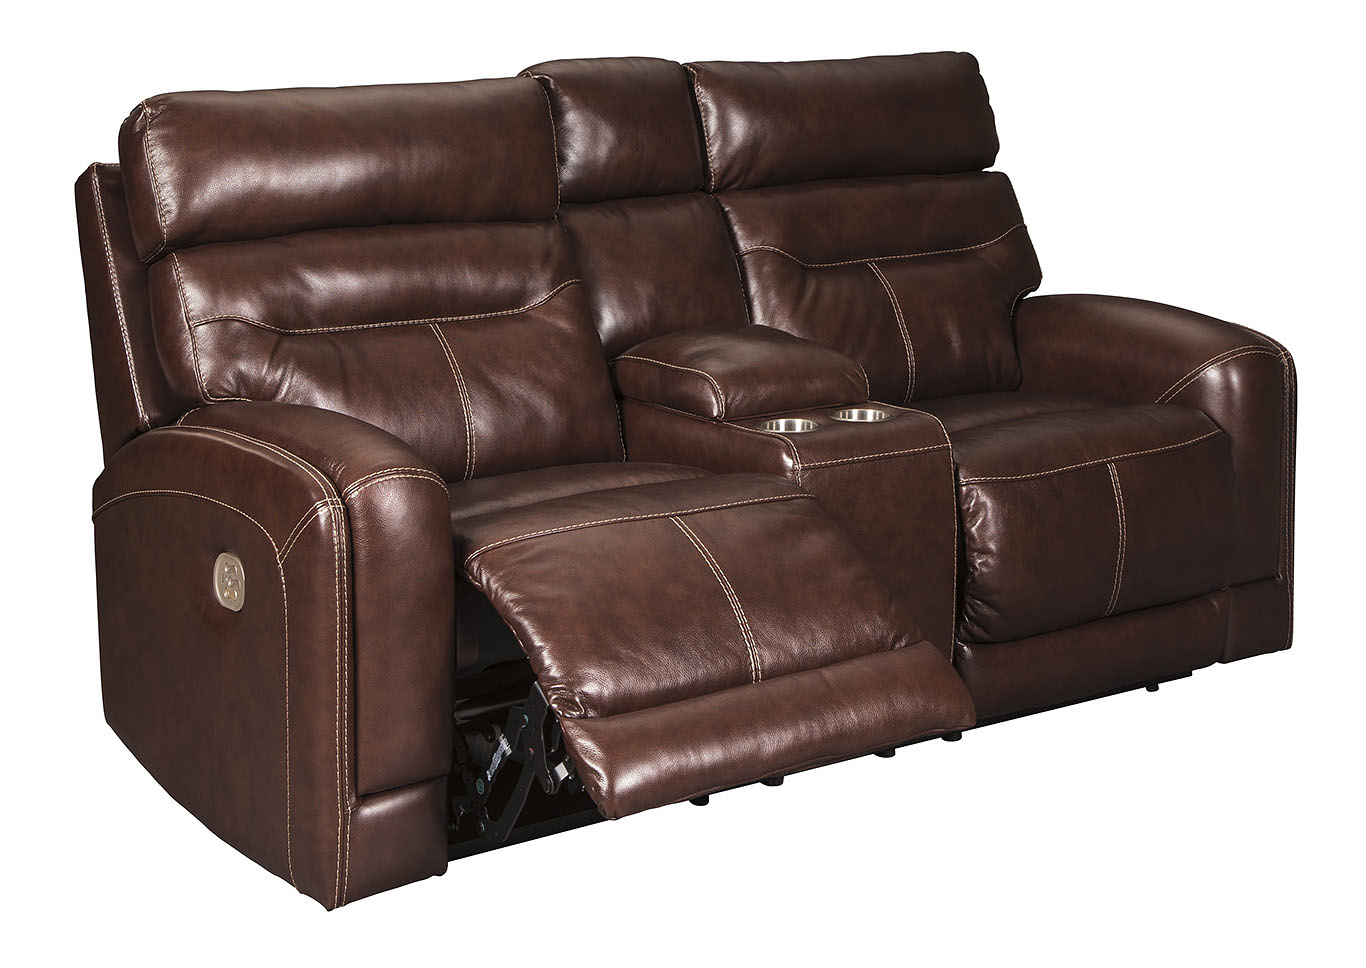 Sessom Walnut Power Reclining Loveseat w/Adjustable Headrest and Console,Signature Design By Ashley